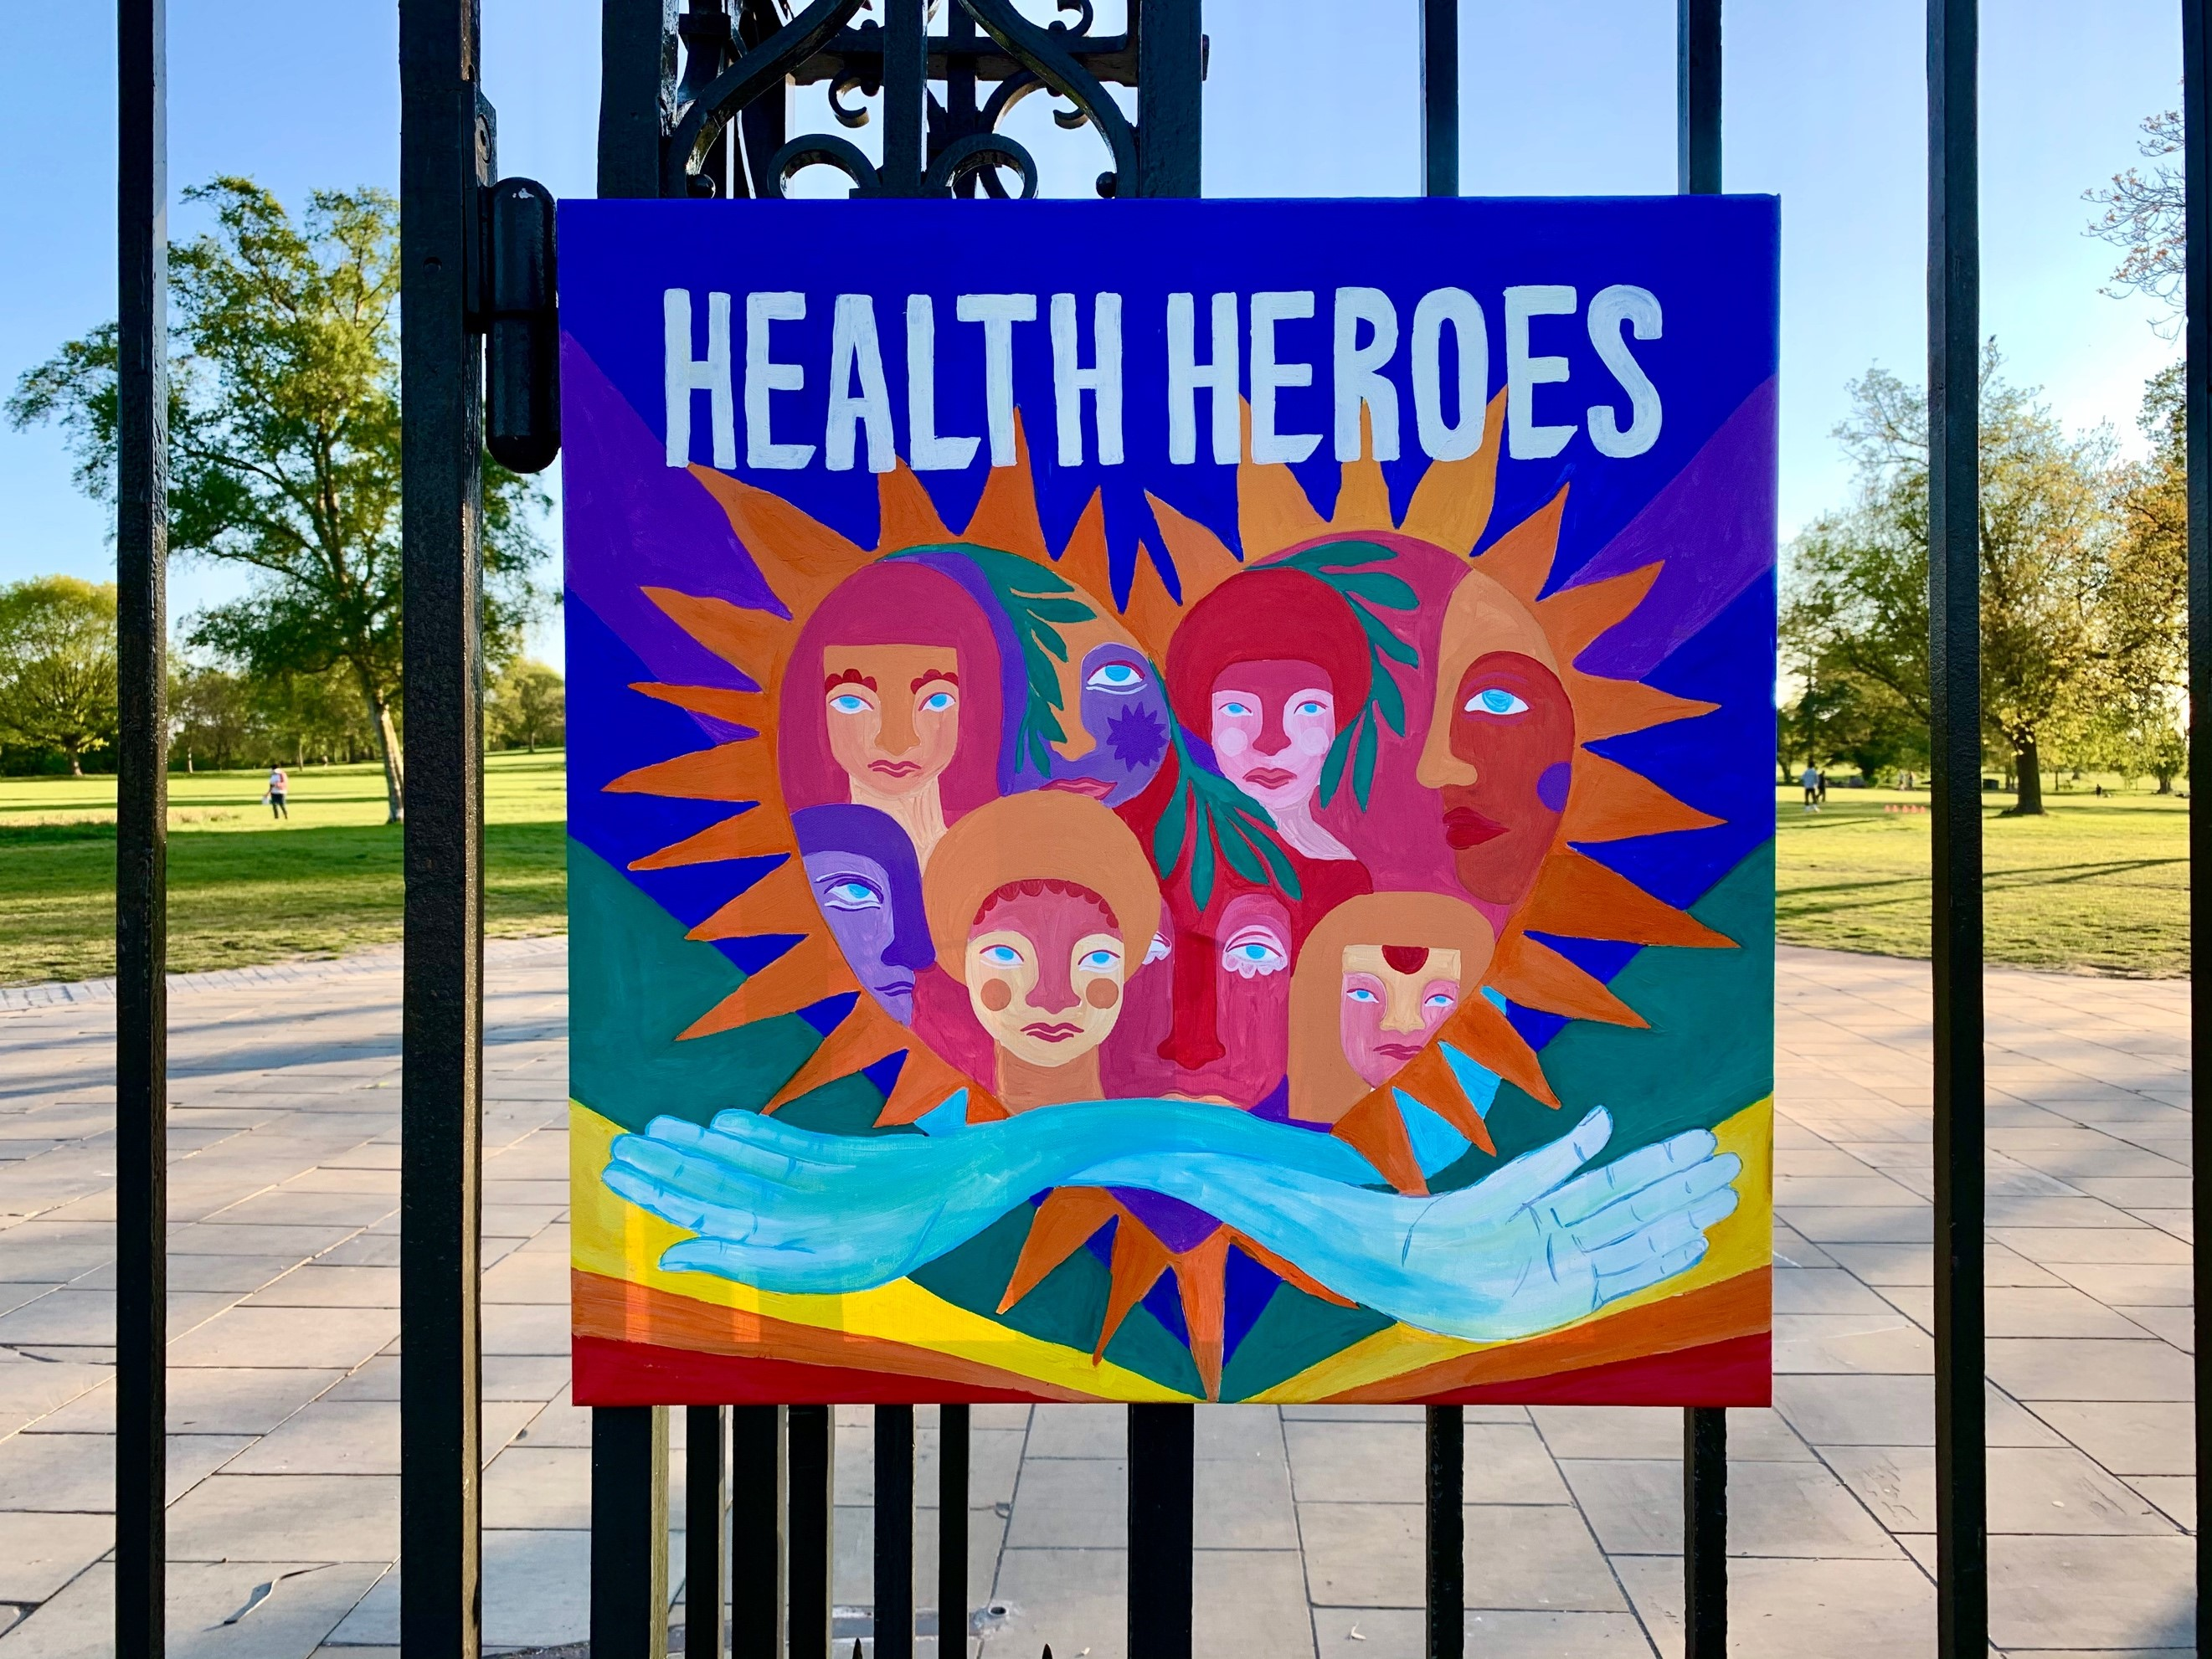 Poster on park gate, 'Health Heroes', copyright: Joe Penny